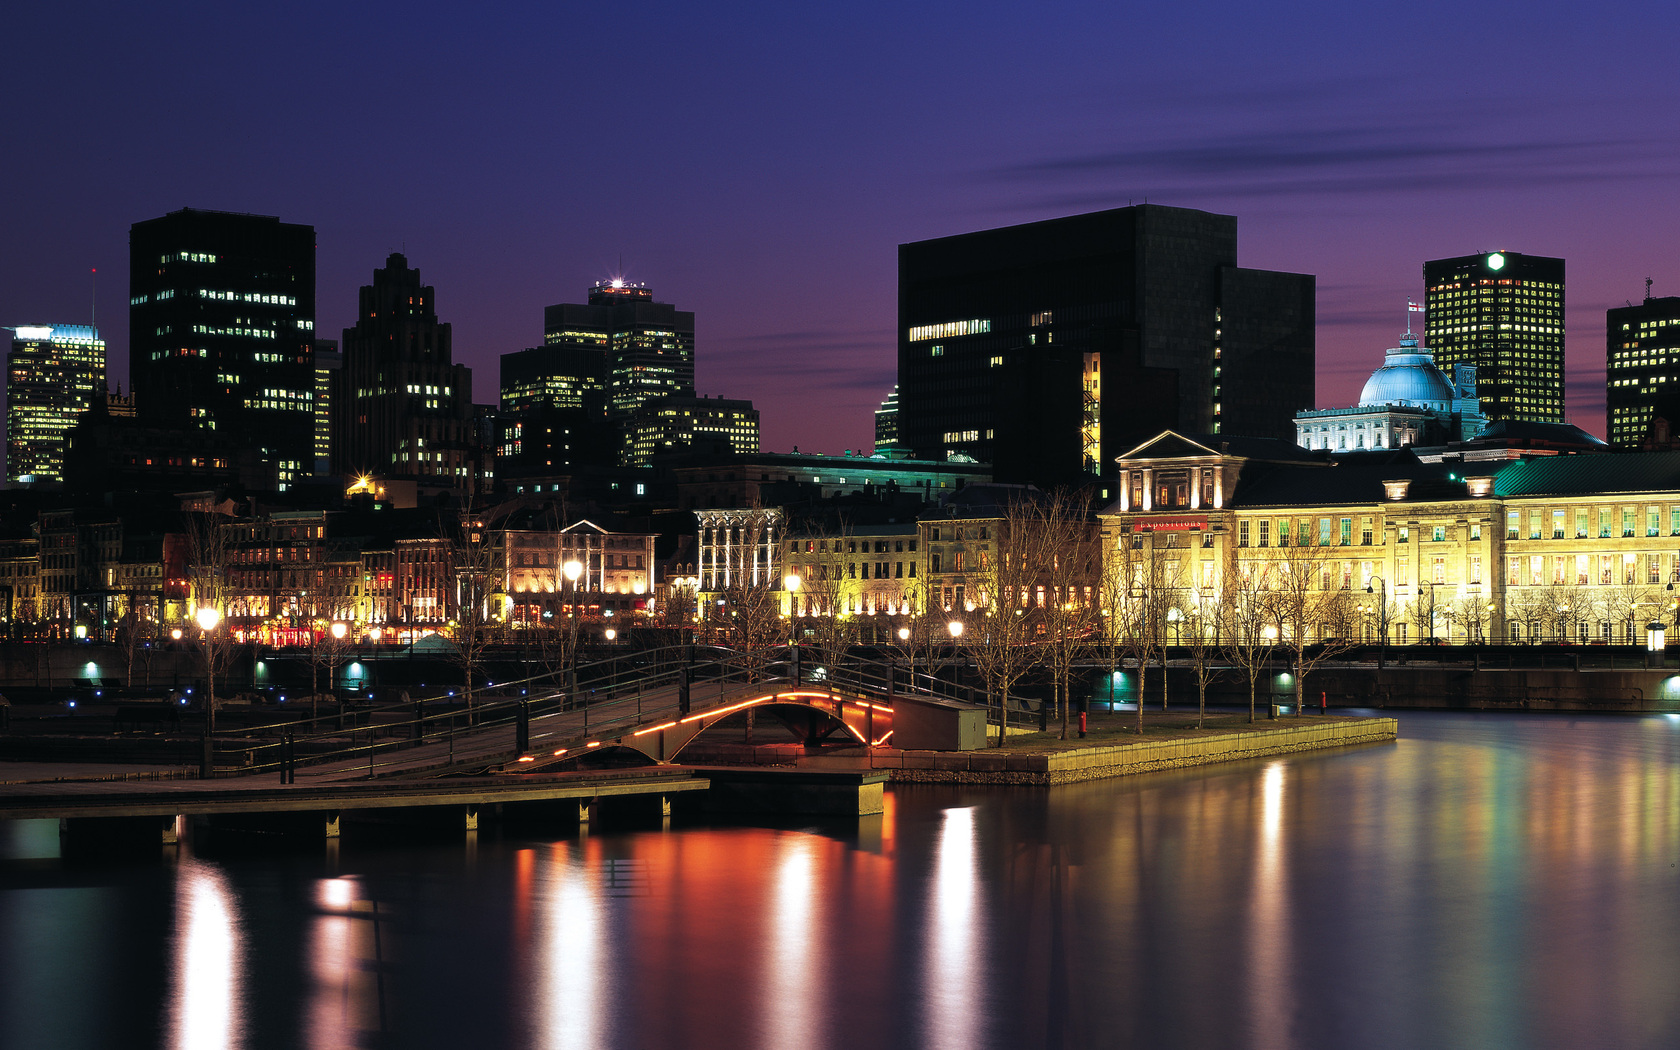 Montreal Wallpaper 854593 1680x1050px 1680x1050